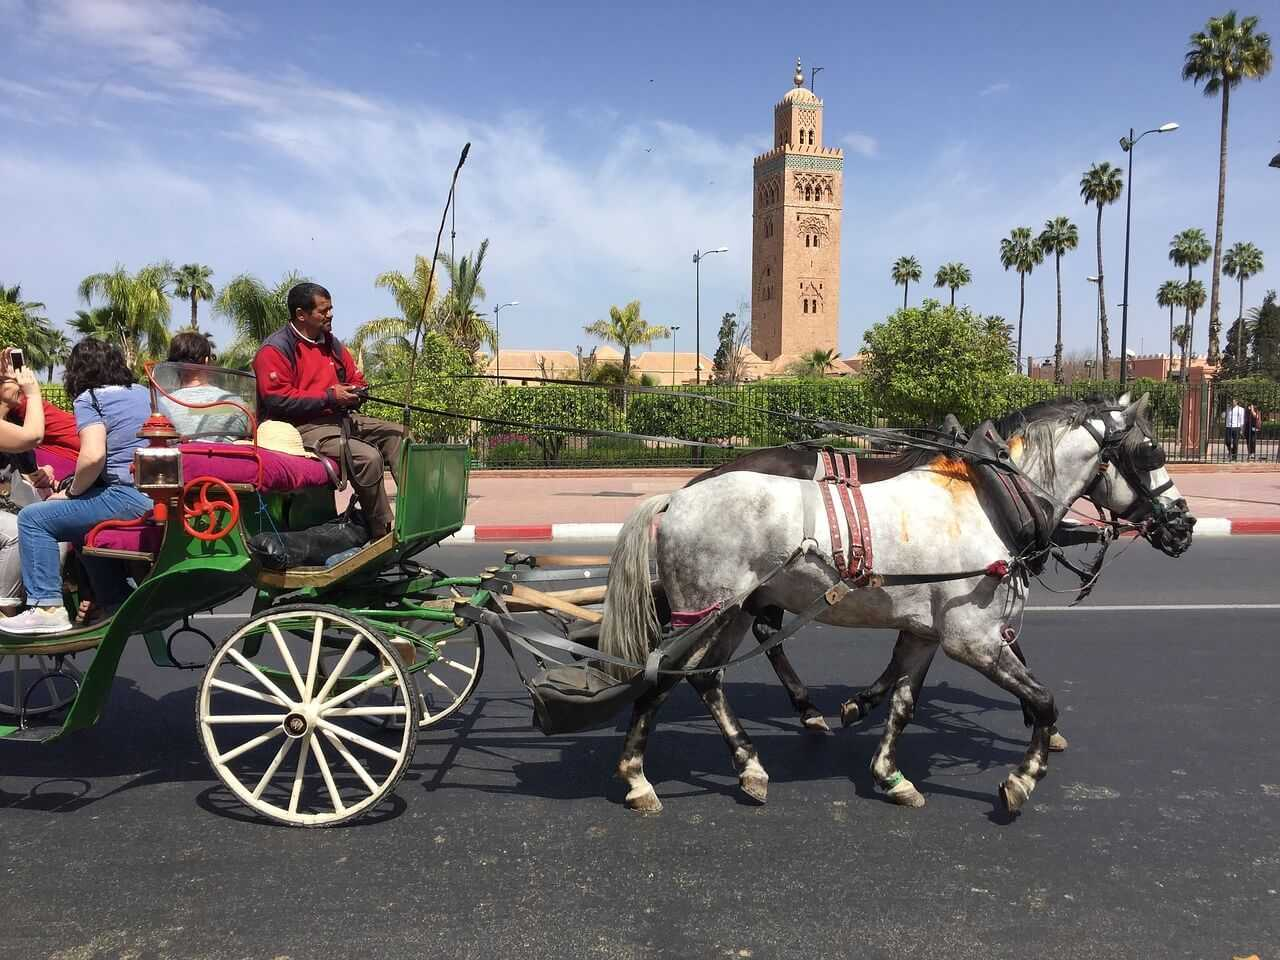 Things to do in Marrakech - Koutoubia Mosque